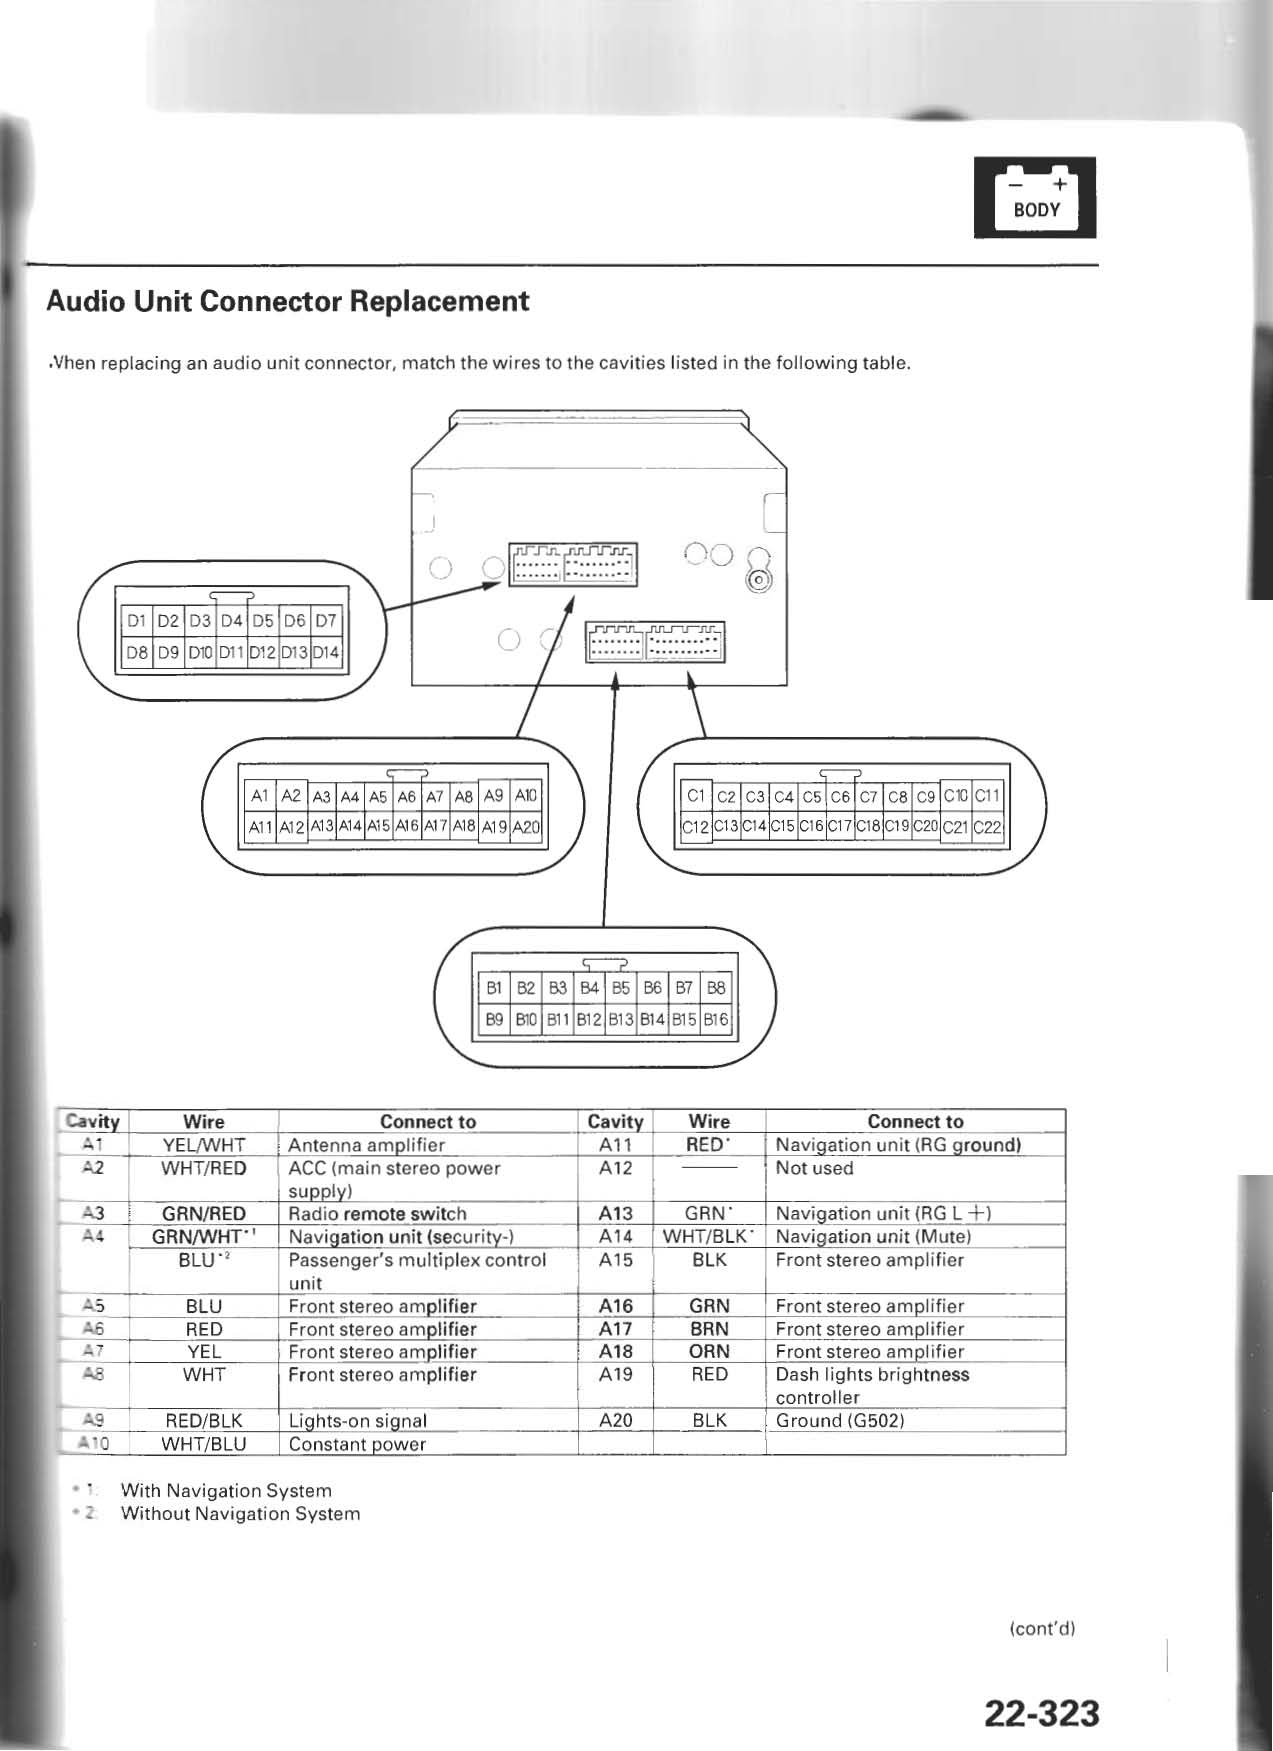 30384d1111169775 retrofit 01 04 mdx w bluetooth outs 2003 mdx radio retrofit 01 04 mdx w bluetooth page 2 acura mdx forum acura on 2005 acura mdx wiring diagrams